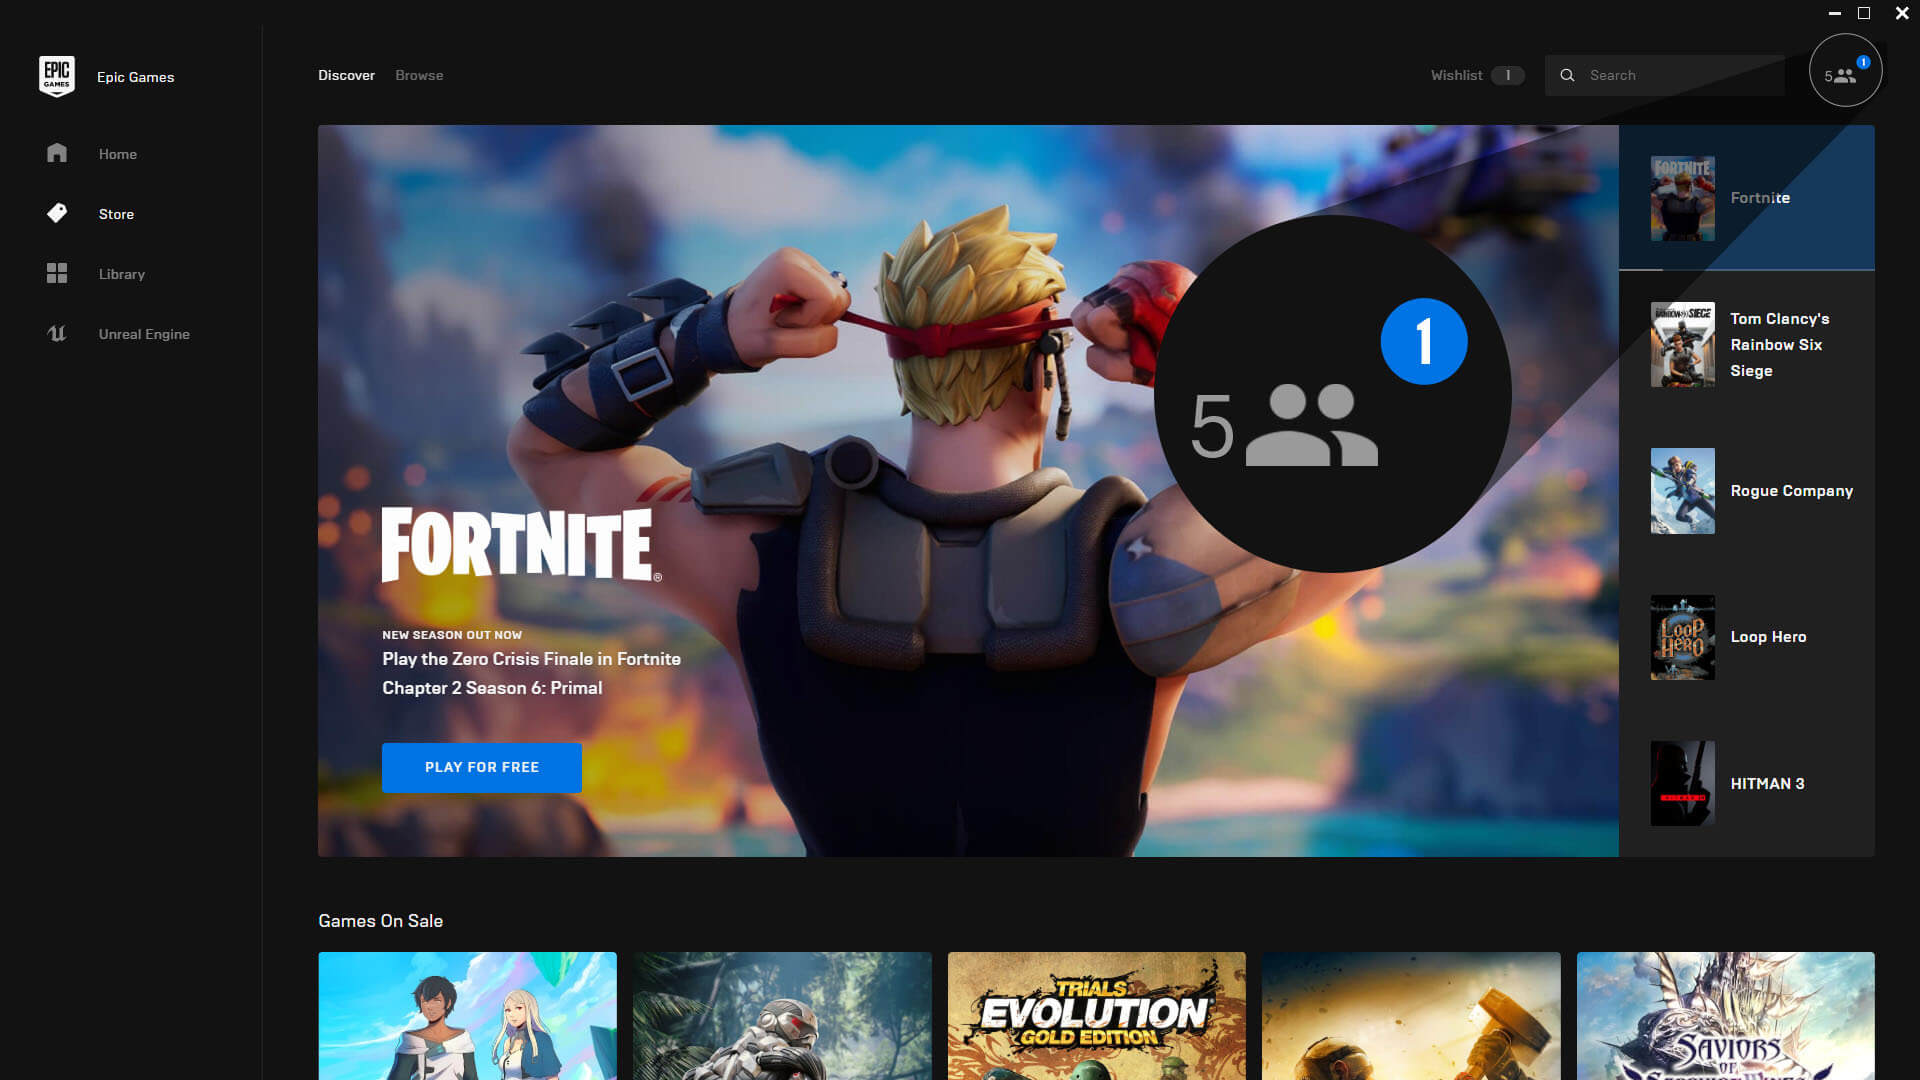 Epic Games Minimized View for Social Panel